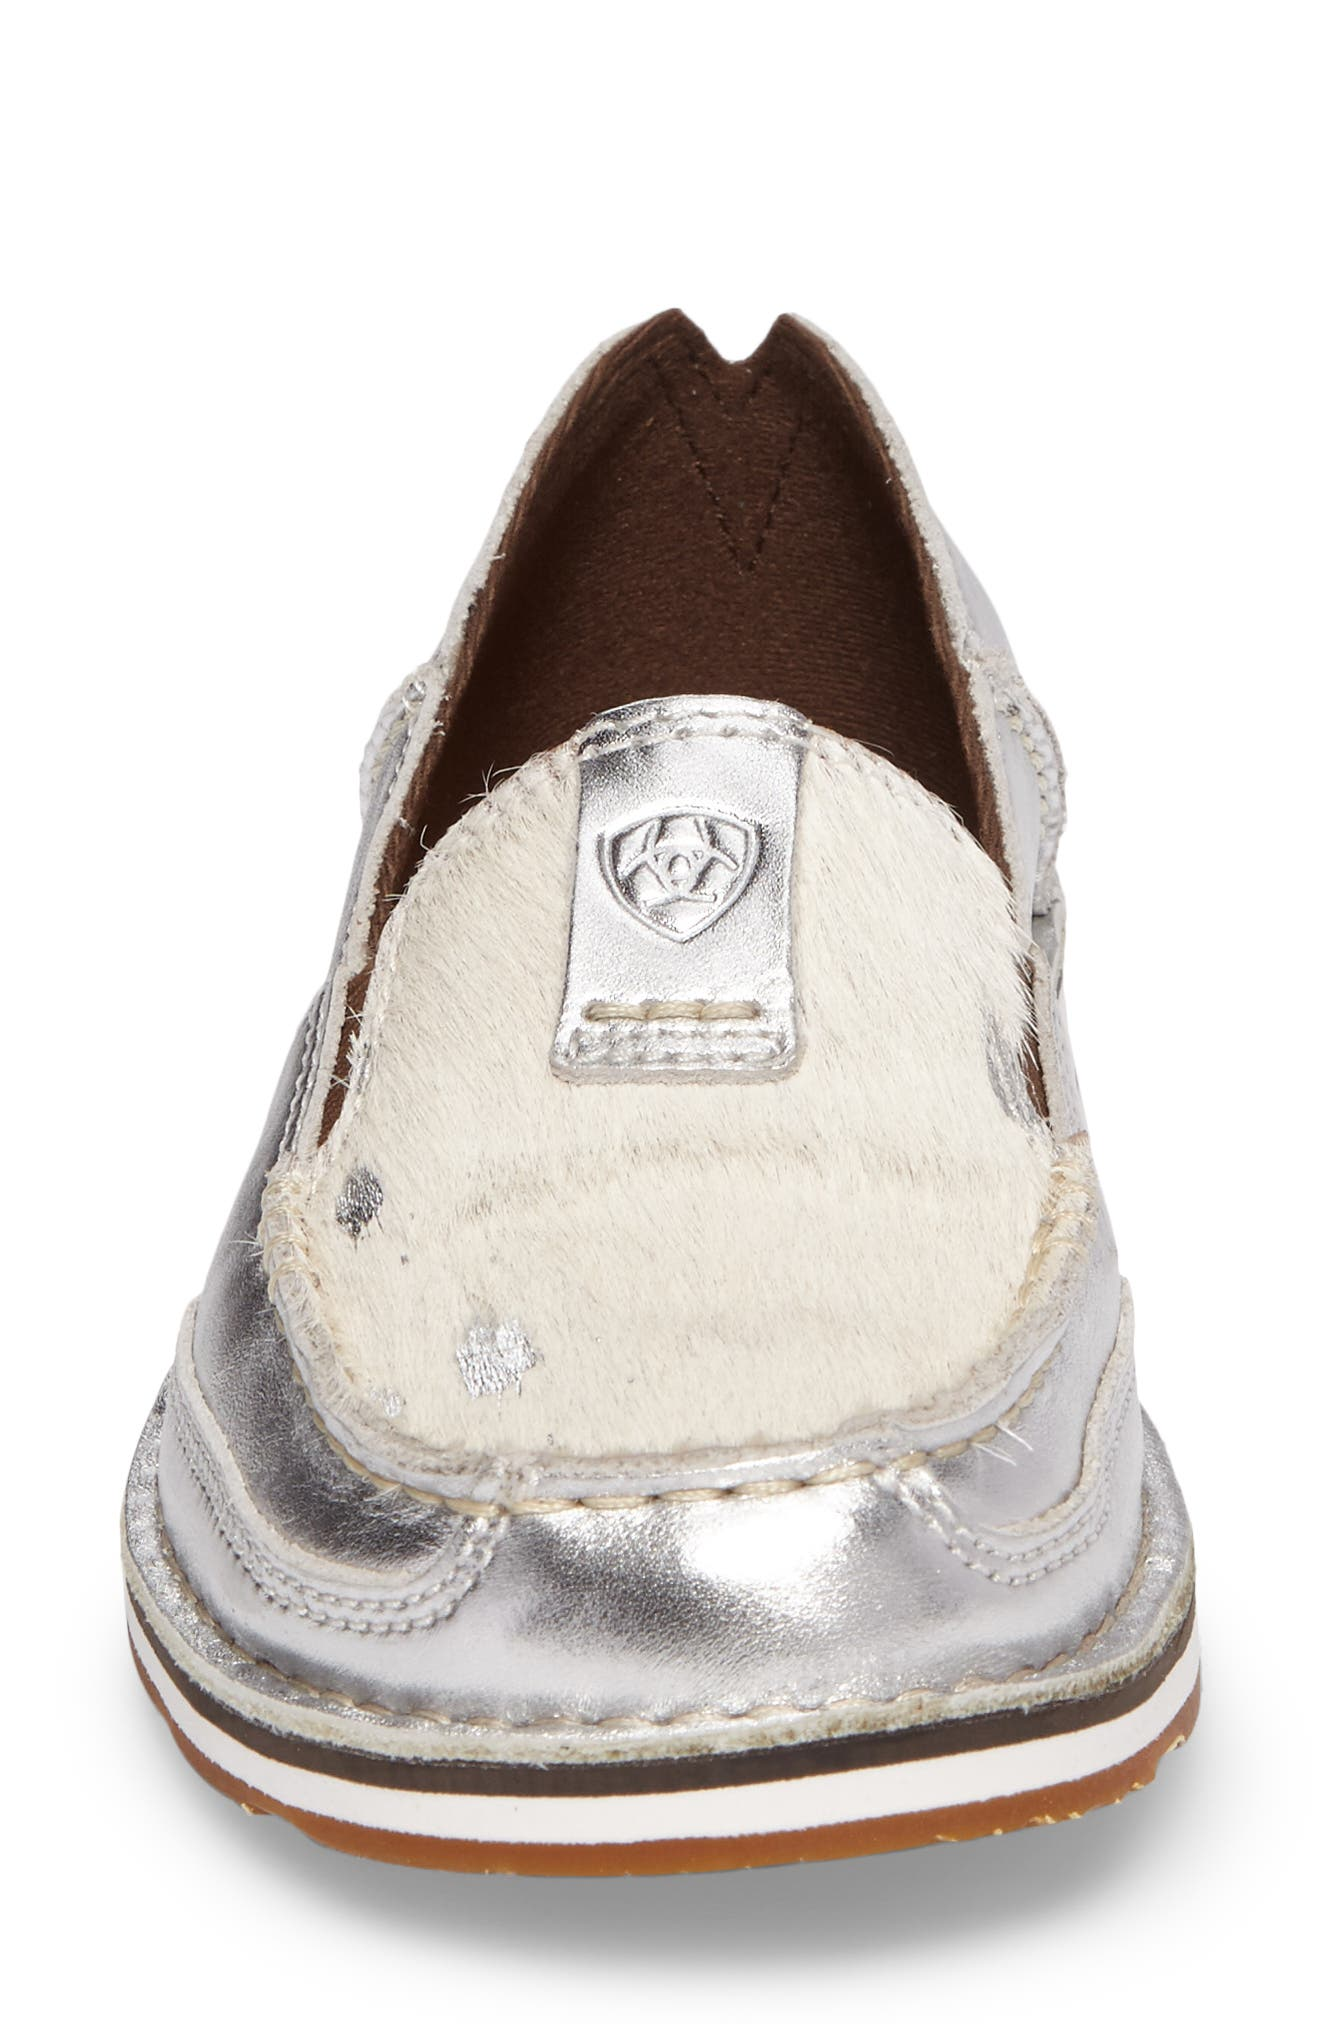 Alternate Image 4  - Ariat Cruiser Genuine Calf Hair Slip-On Loafer (Women)